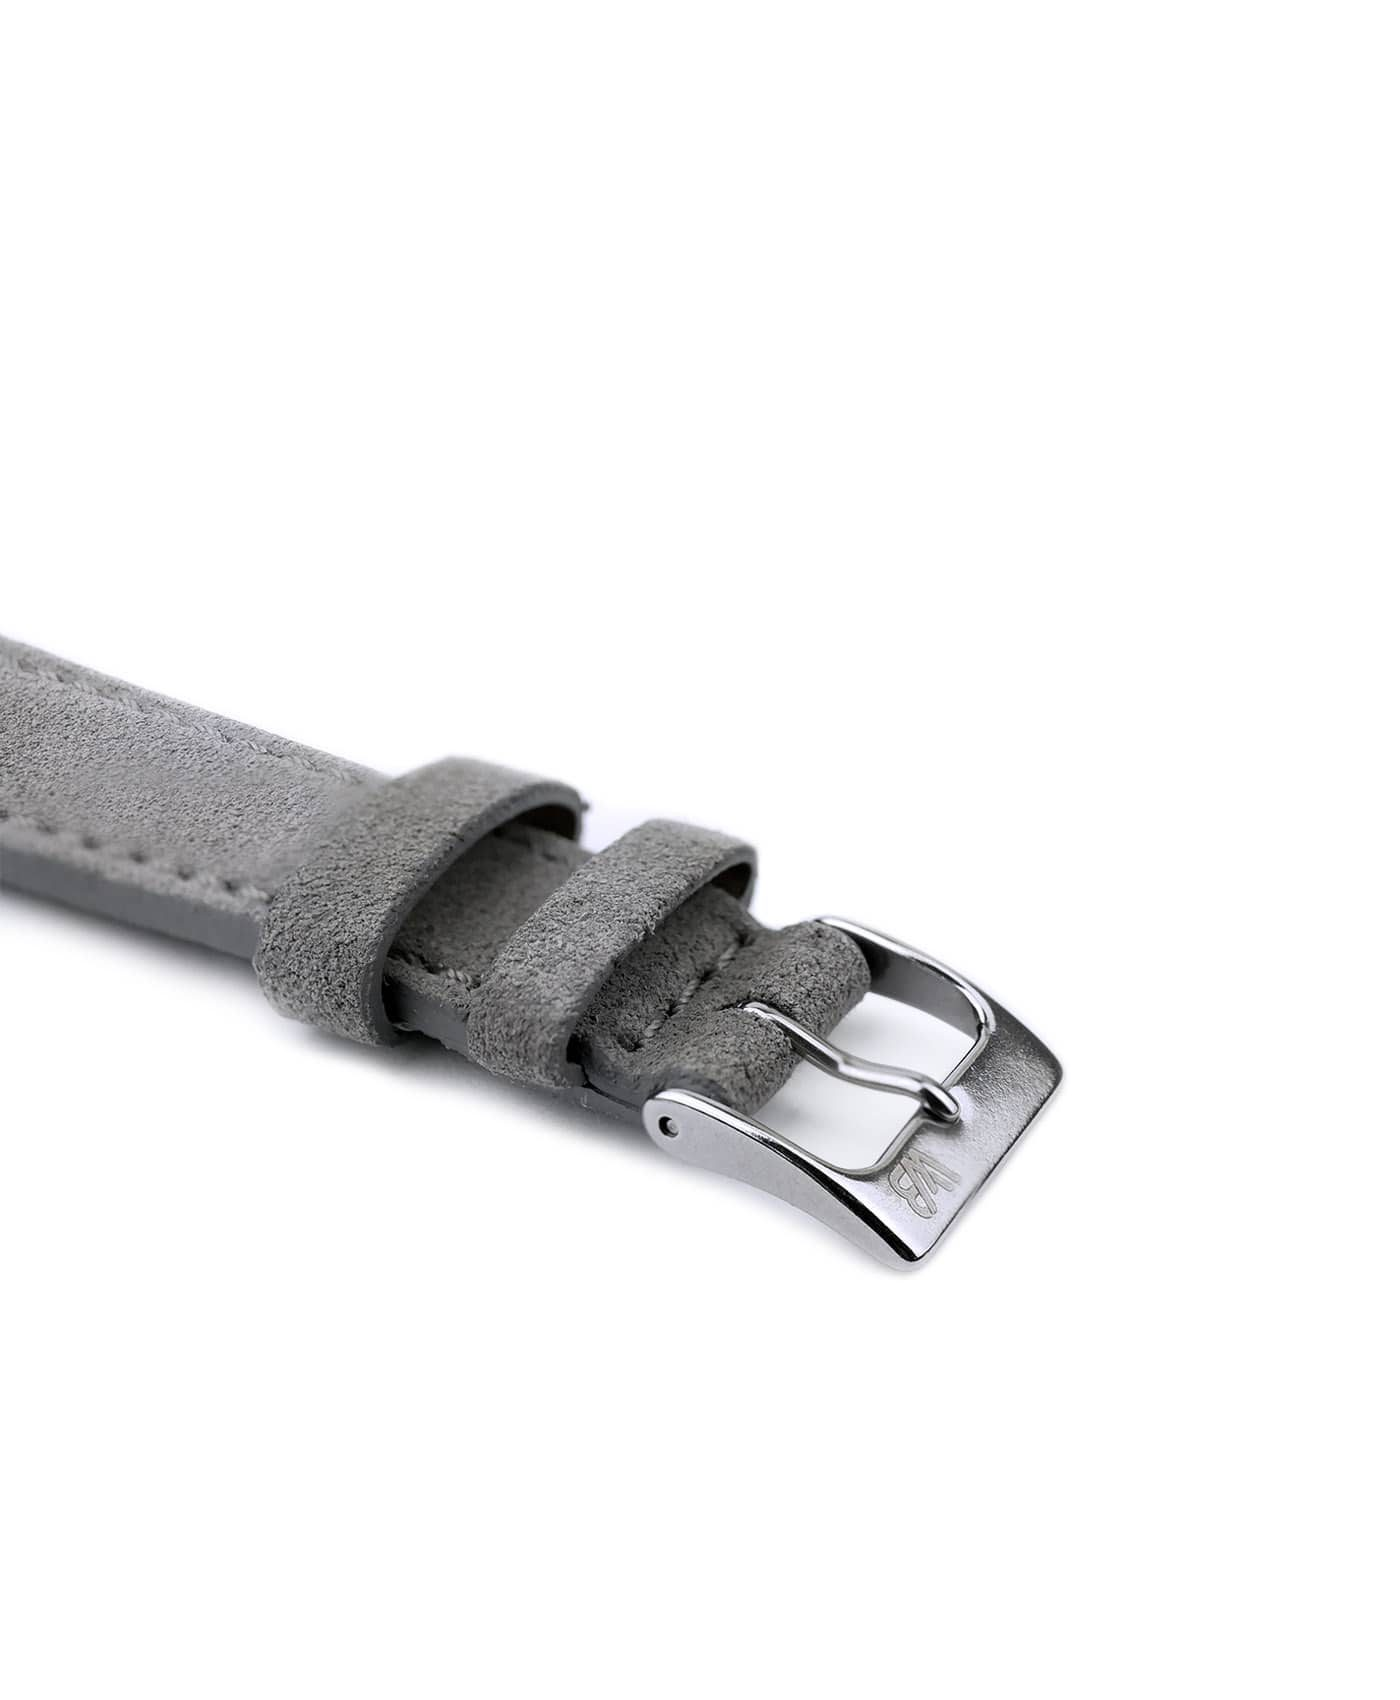 Suede leather strap with side seam_grey_side buckle